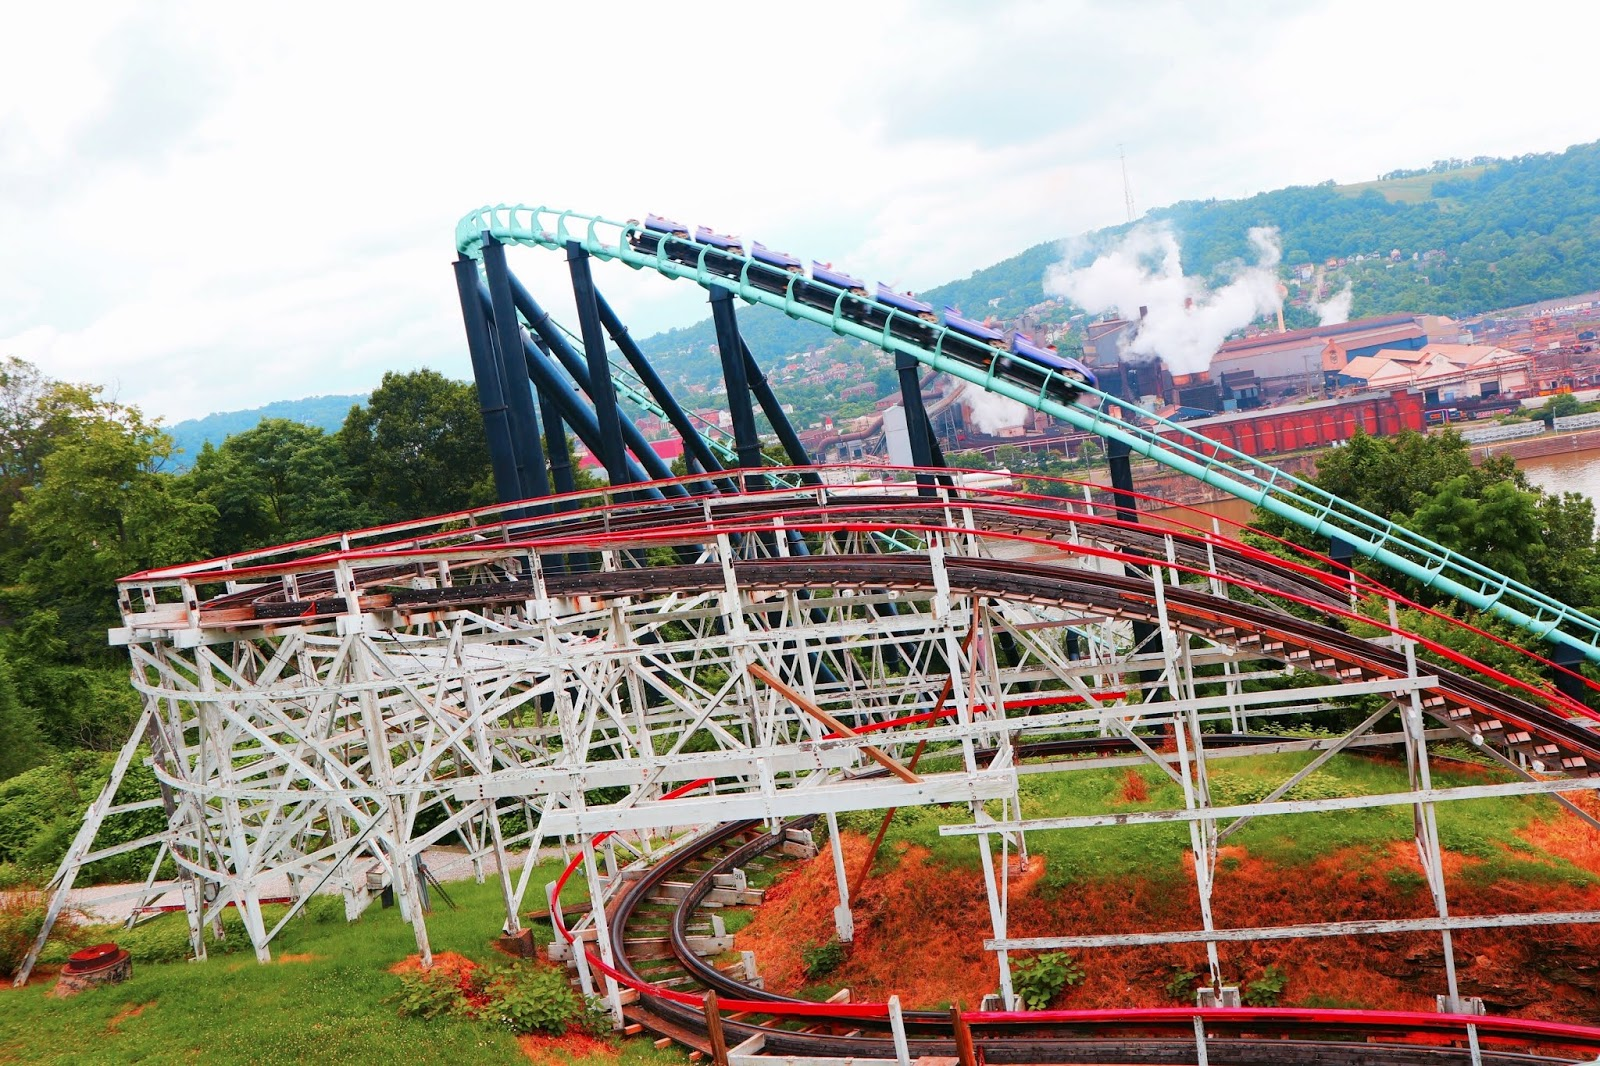 Image of Phantoms Revenge Roller Coaster